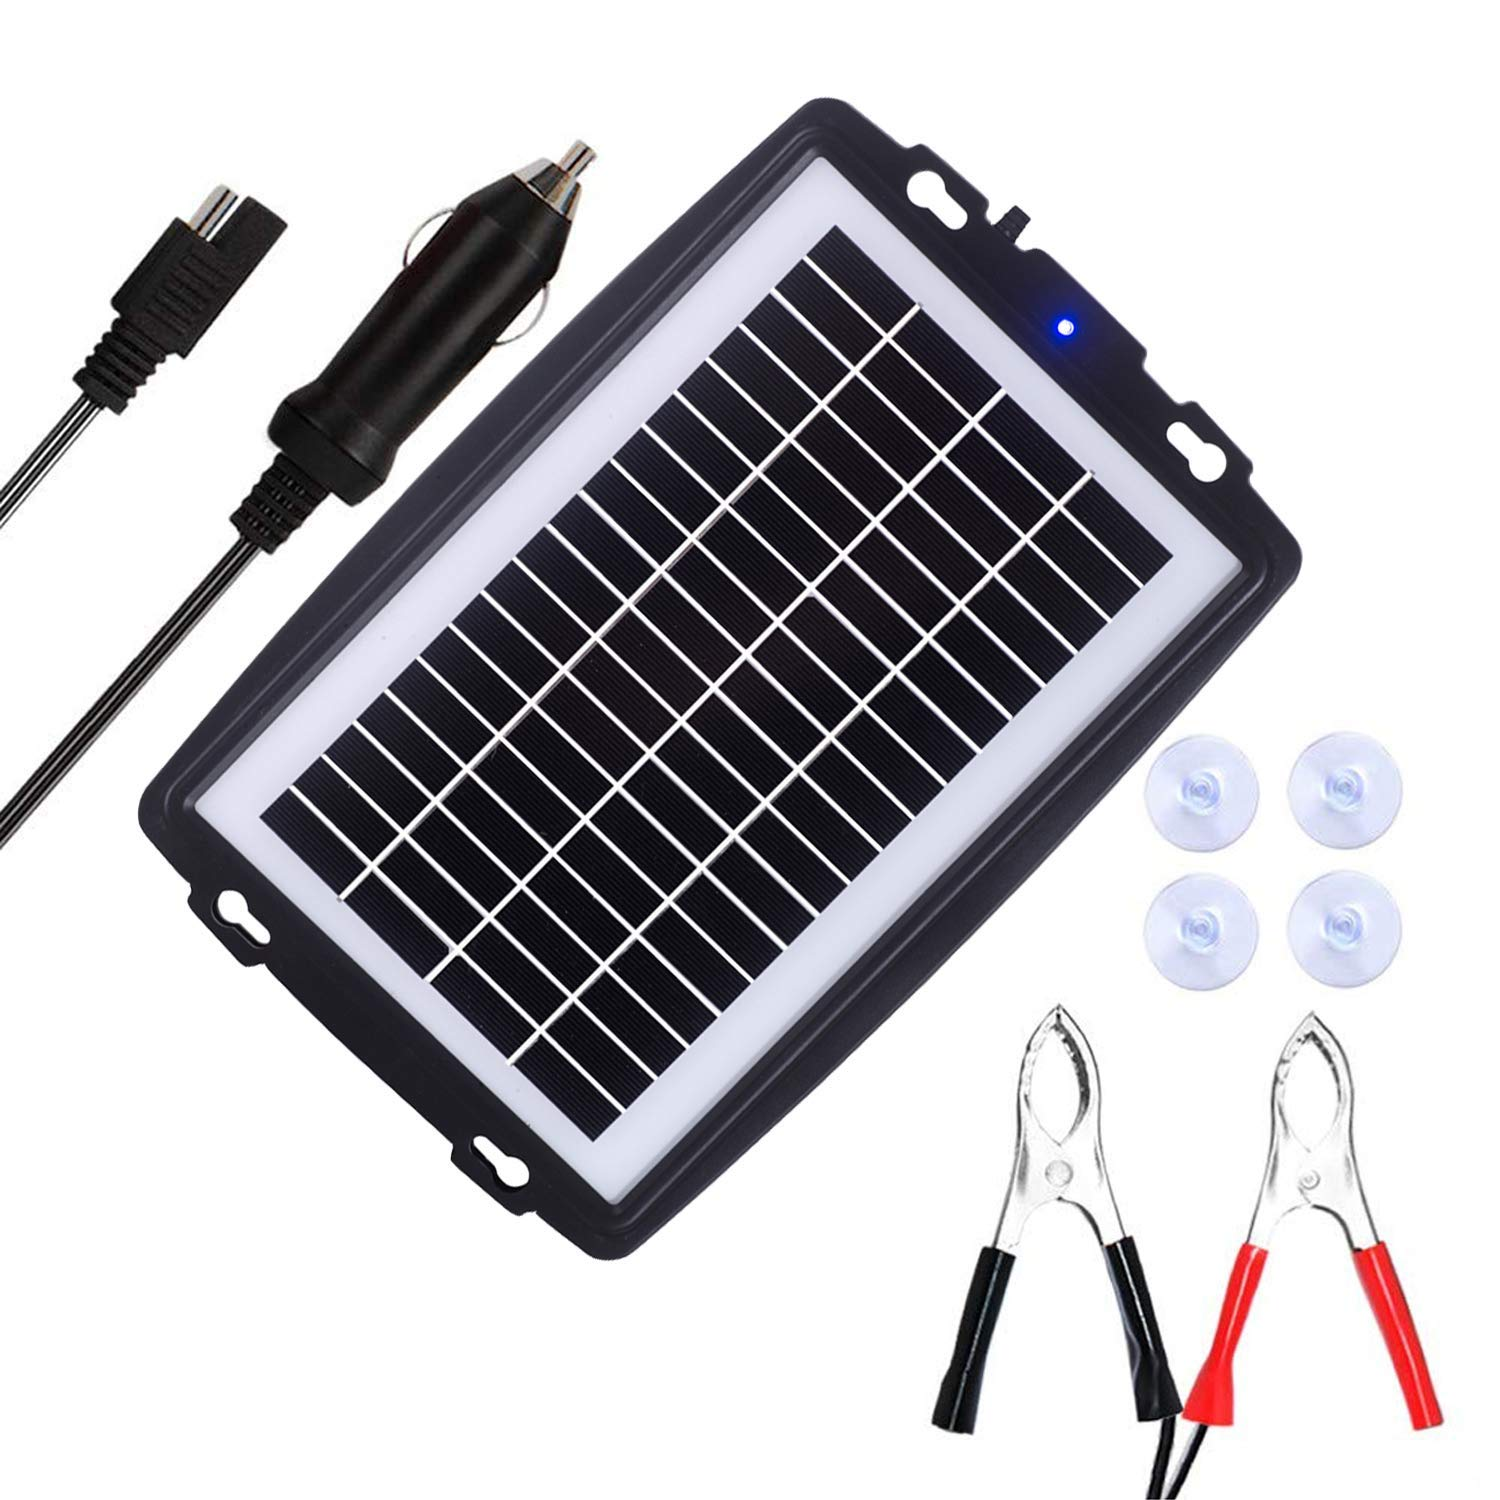 MEGSUN 10W 12V Solar Battery trickle with Plug, Battery Clip Module and Suction Cups Portable and Waterproof for Automotive, Motorcycle, Boat, RV, Powersports, Marine, Snowmobile, etc. by M MEGSUN